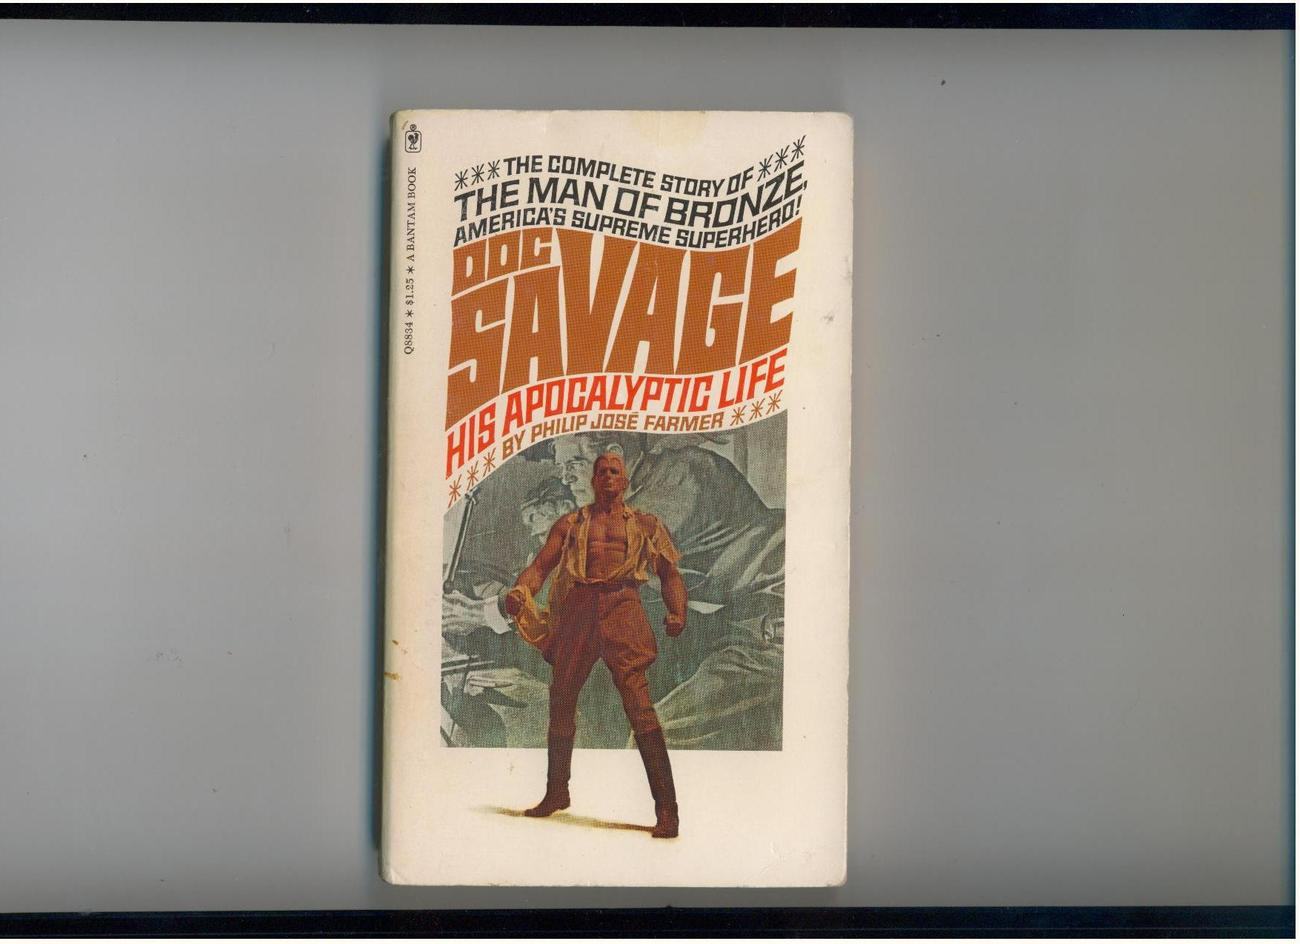 Farmer  DOC SAVAGE: HIS APOCALYPTIC LIFE  1975  1st pb pr.